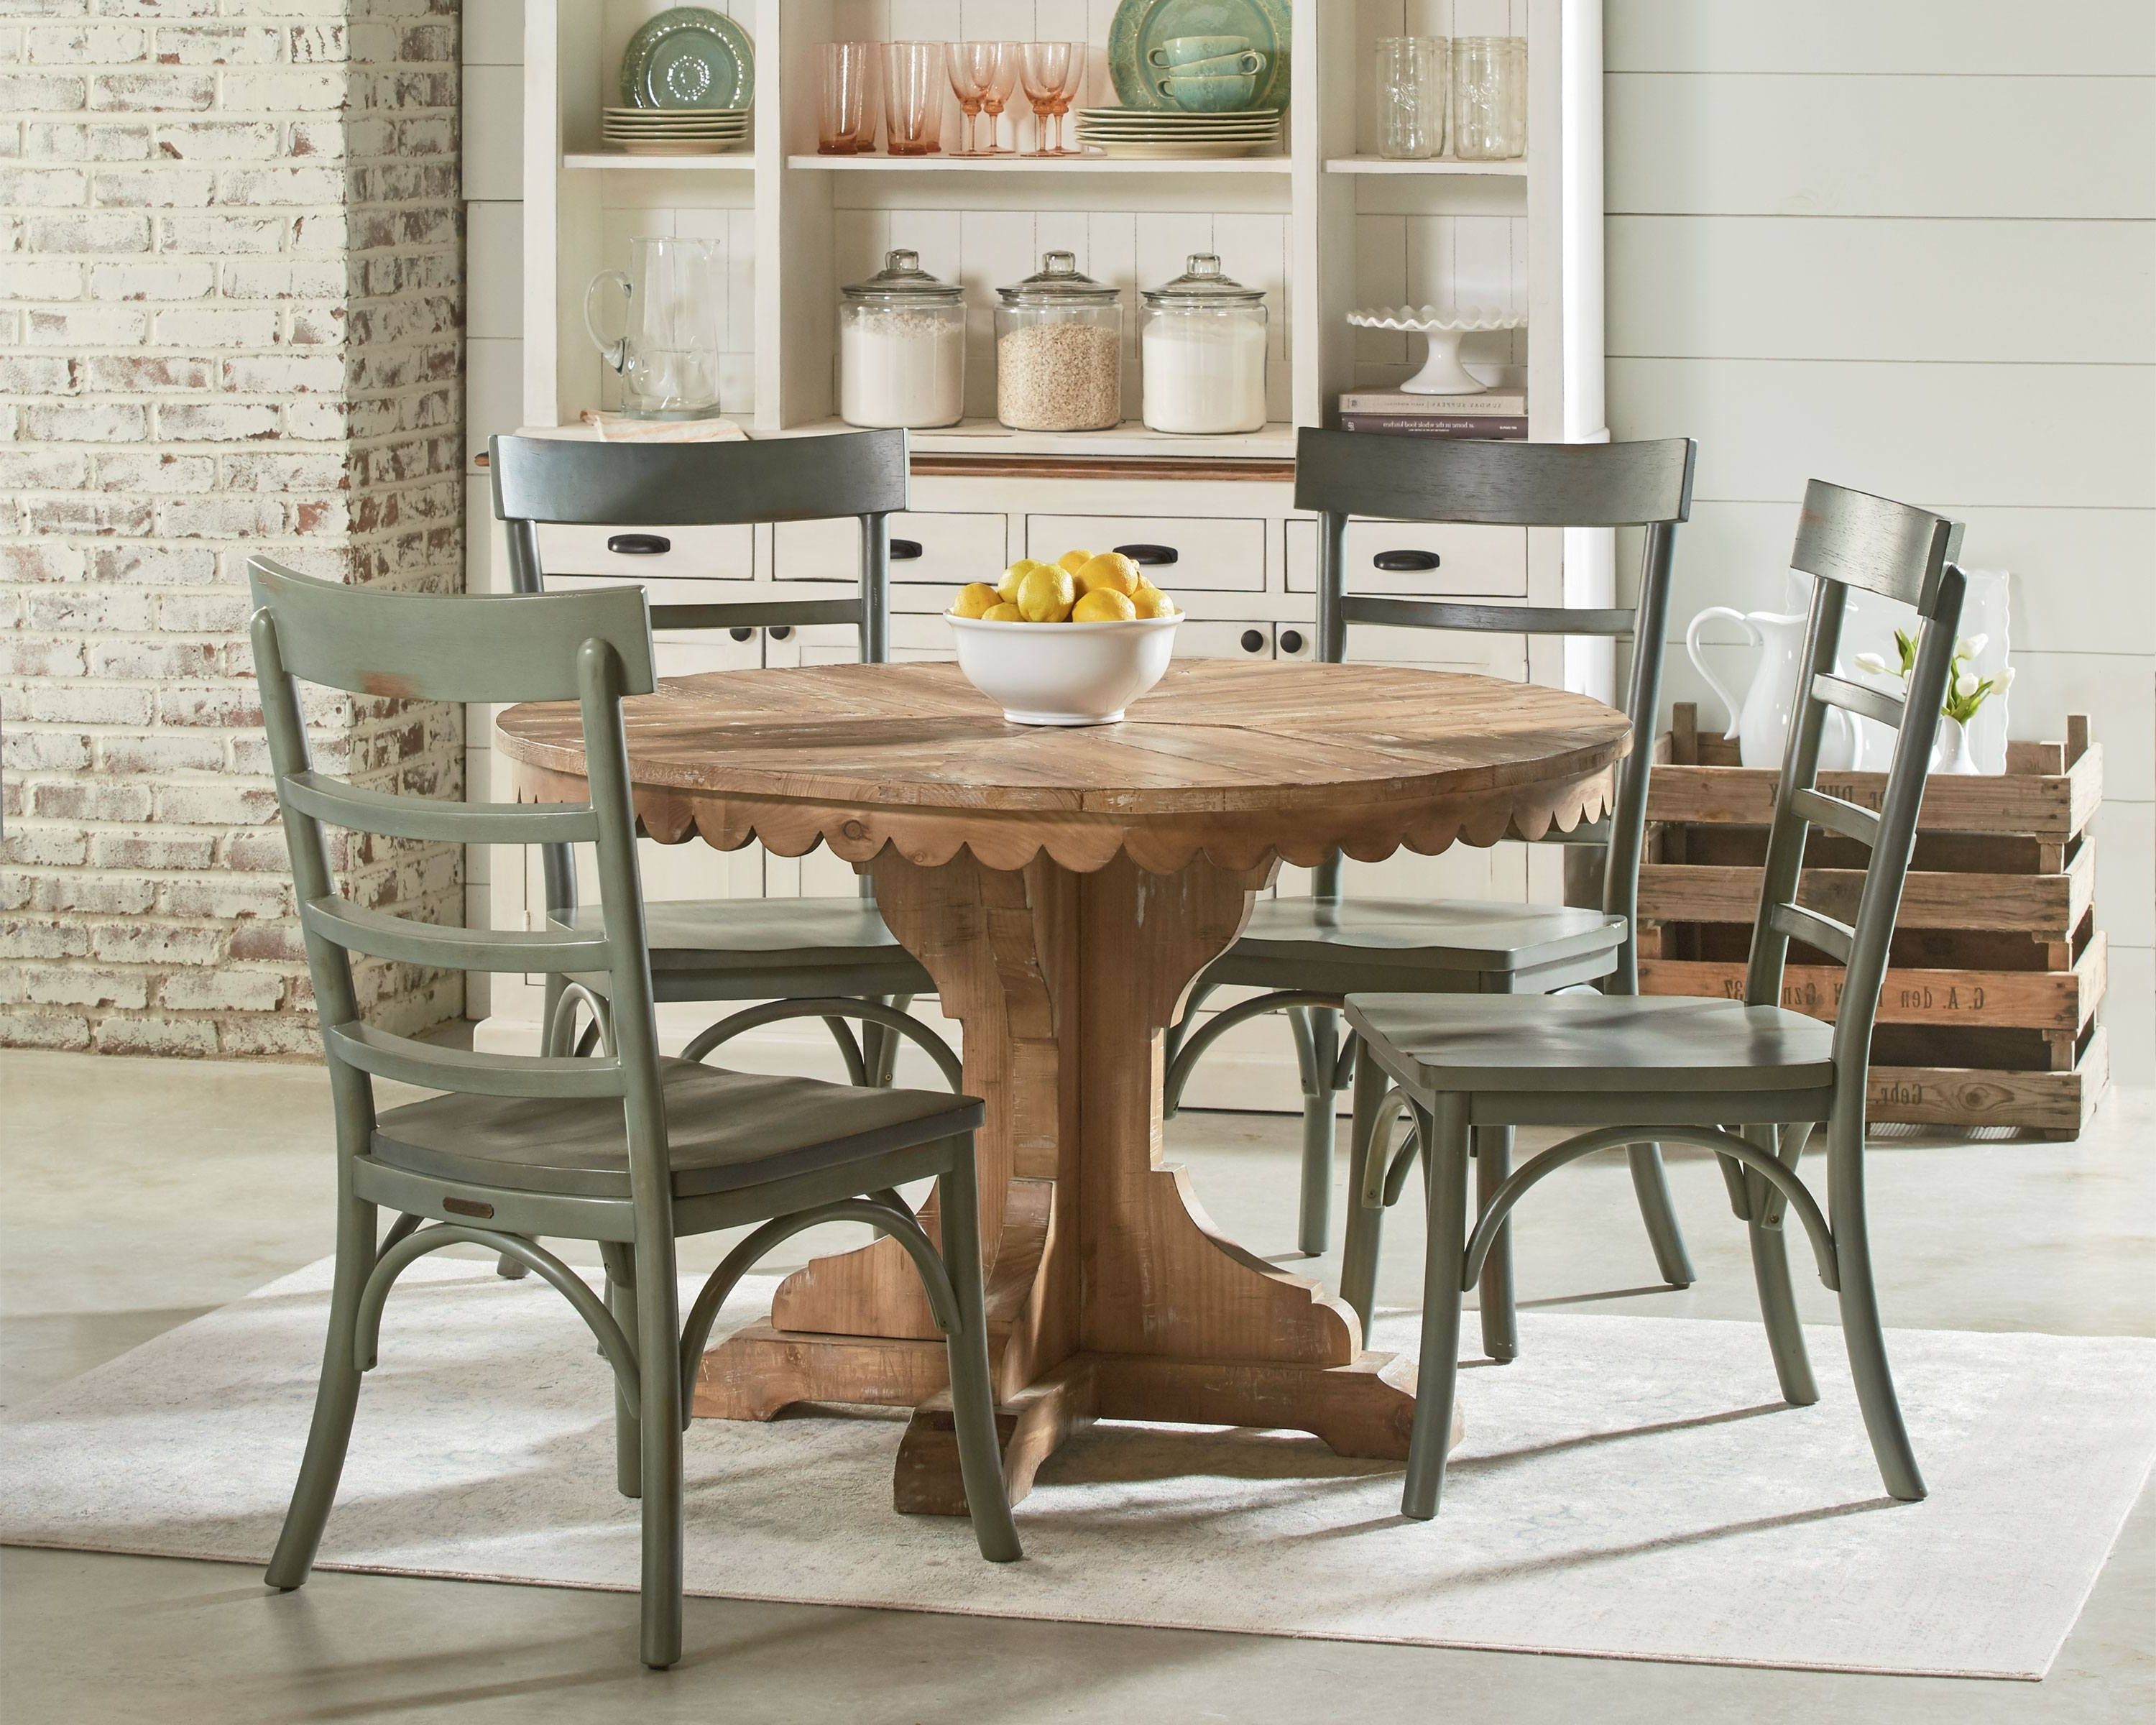 Top Tier + Harper – Magnolia Home For Well Known Magnolia Home Harper Patina Side Chairs (View 6 of 20)